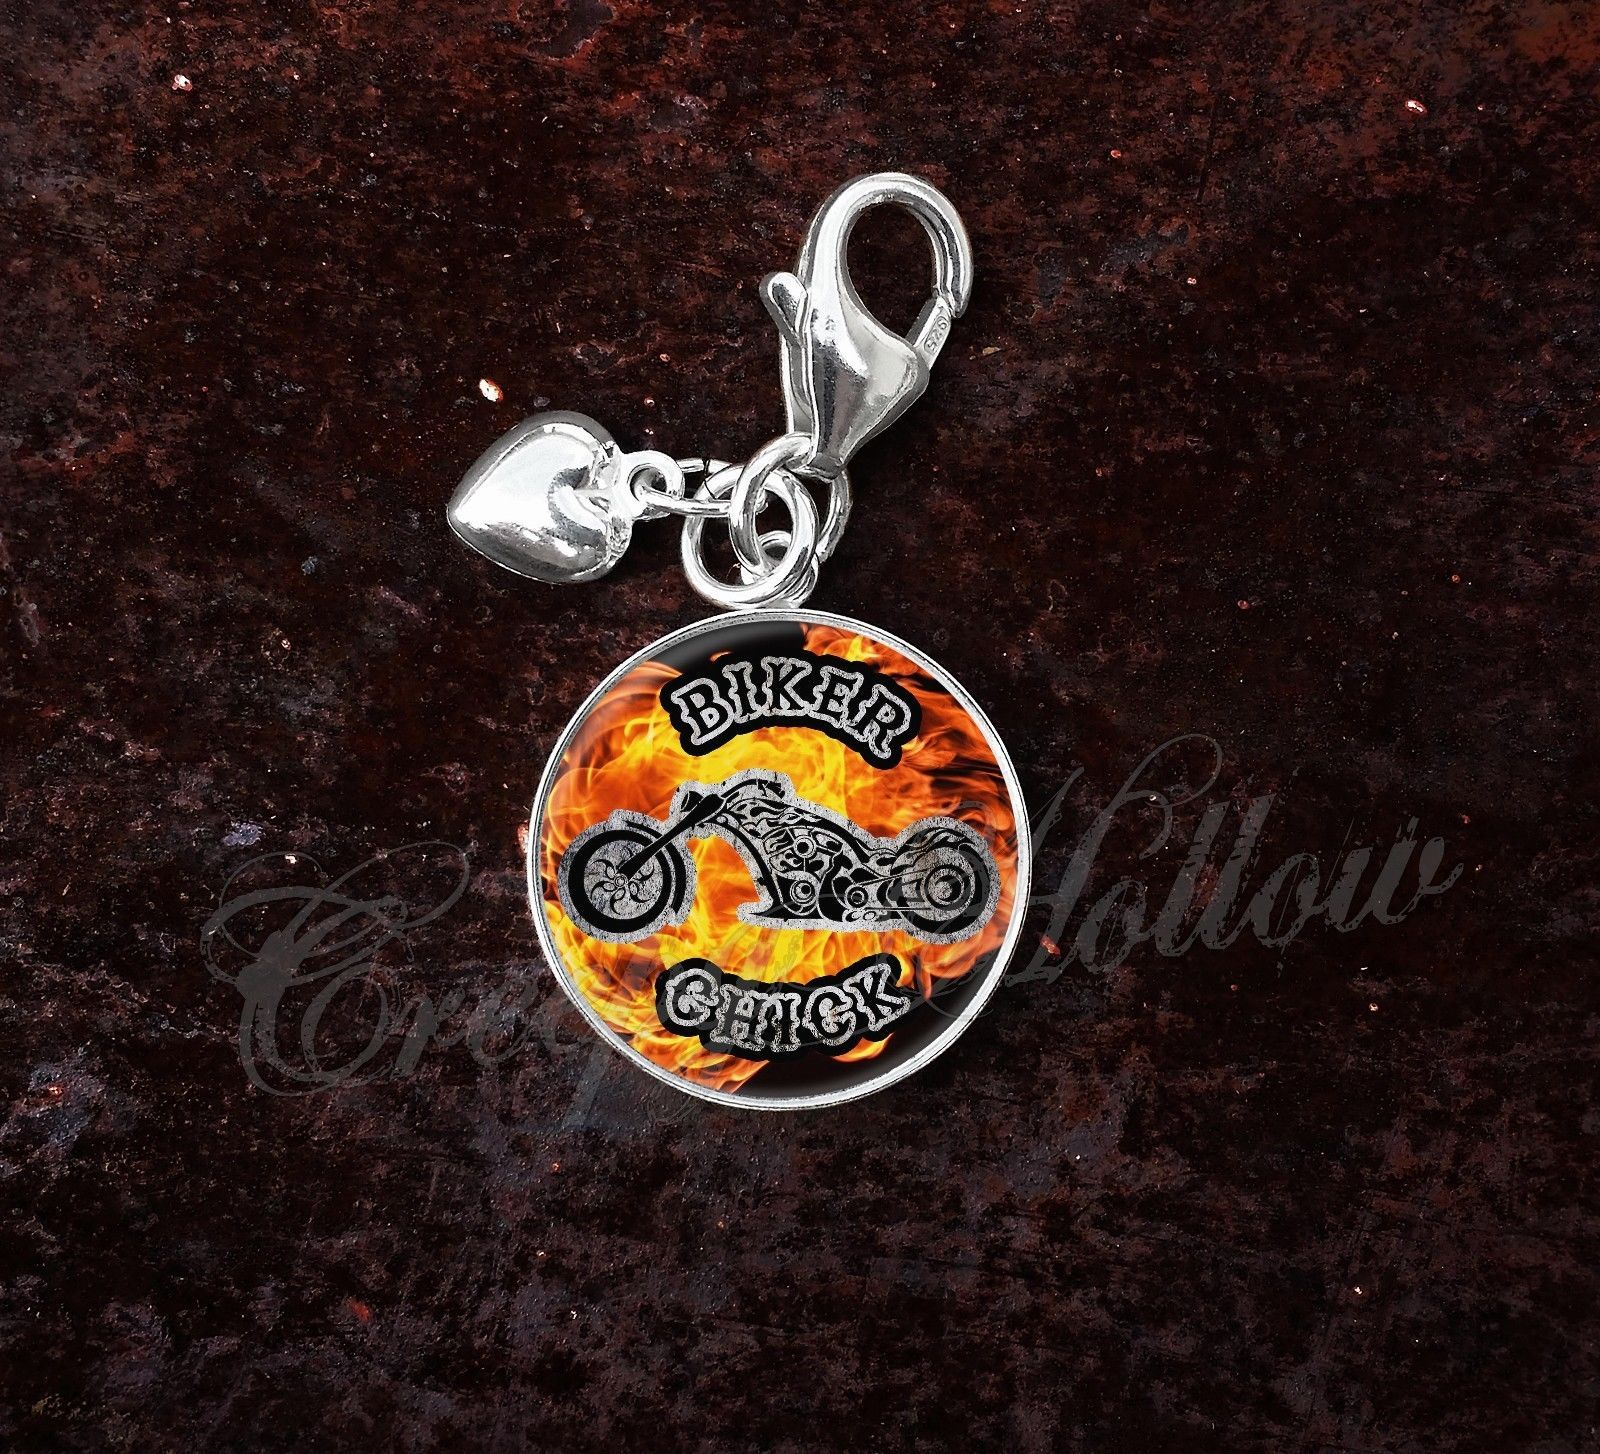 Primary image for 925 Sterling Silver Charm Motorcycle Biker Chick Motorbike Rider